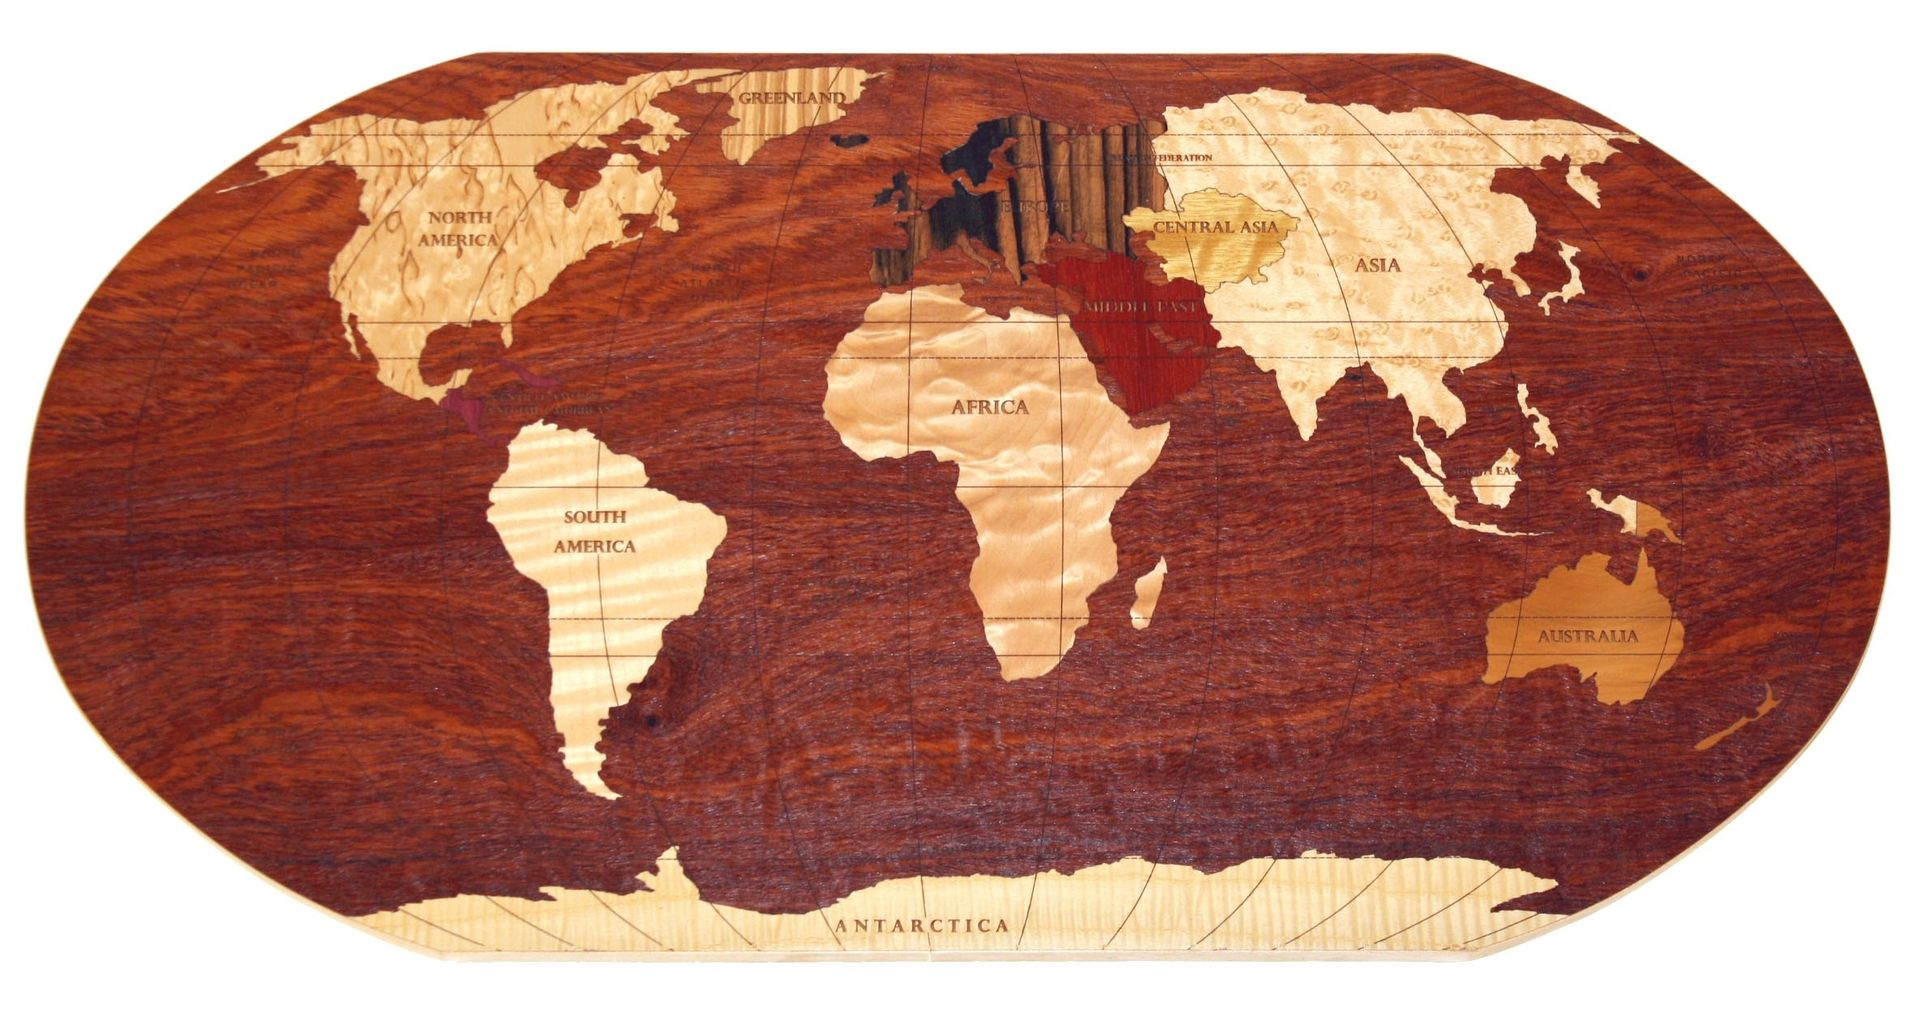 Custom padauk world map 12 x 24 by neerly obsessed custommade custom made padauk world map 12 x 24 gumiabroncs Image collections